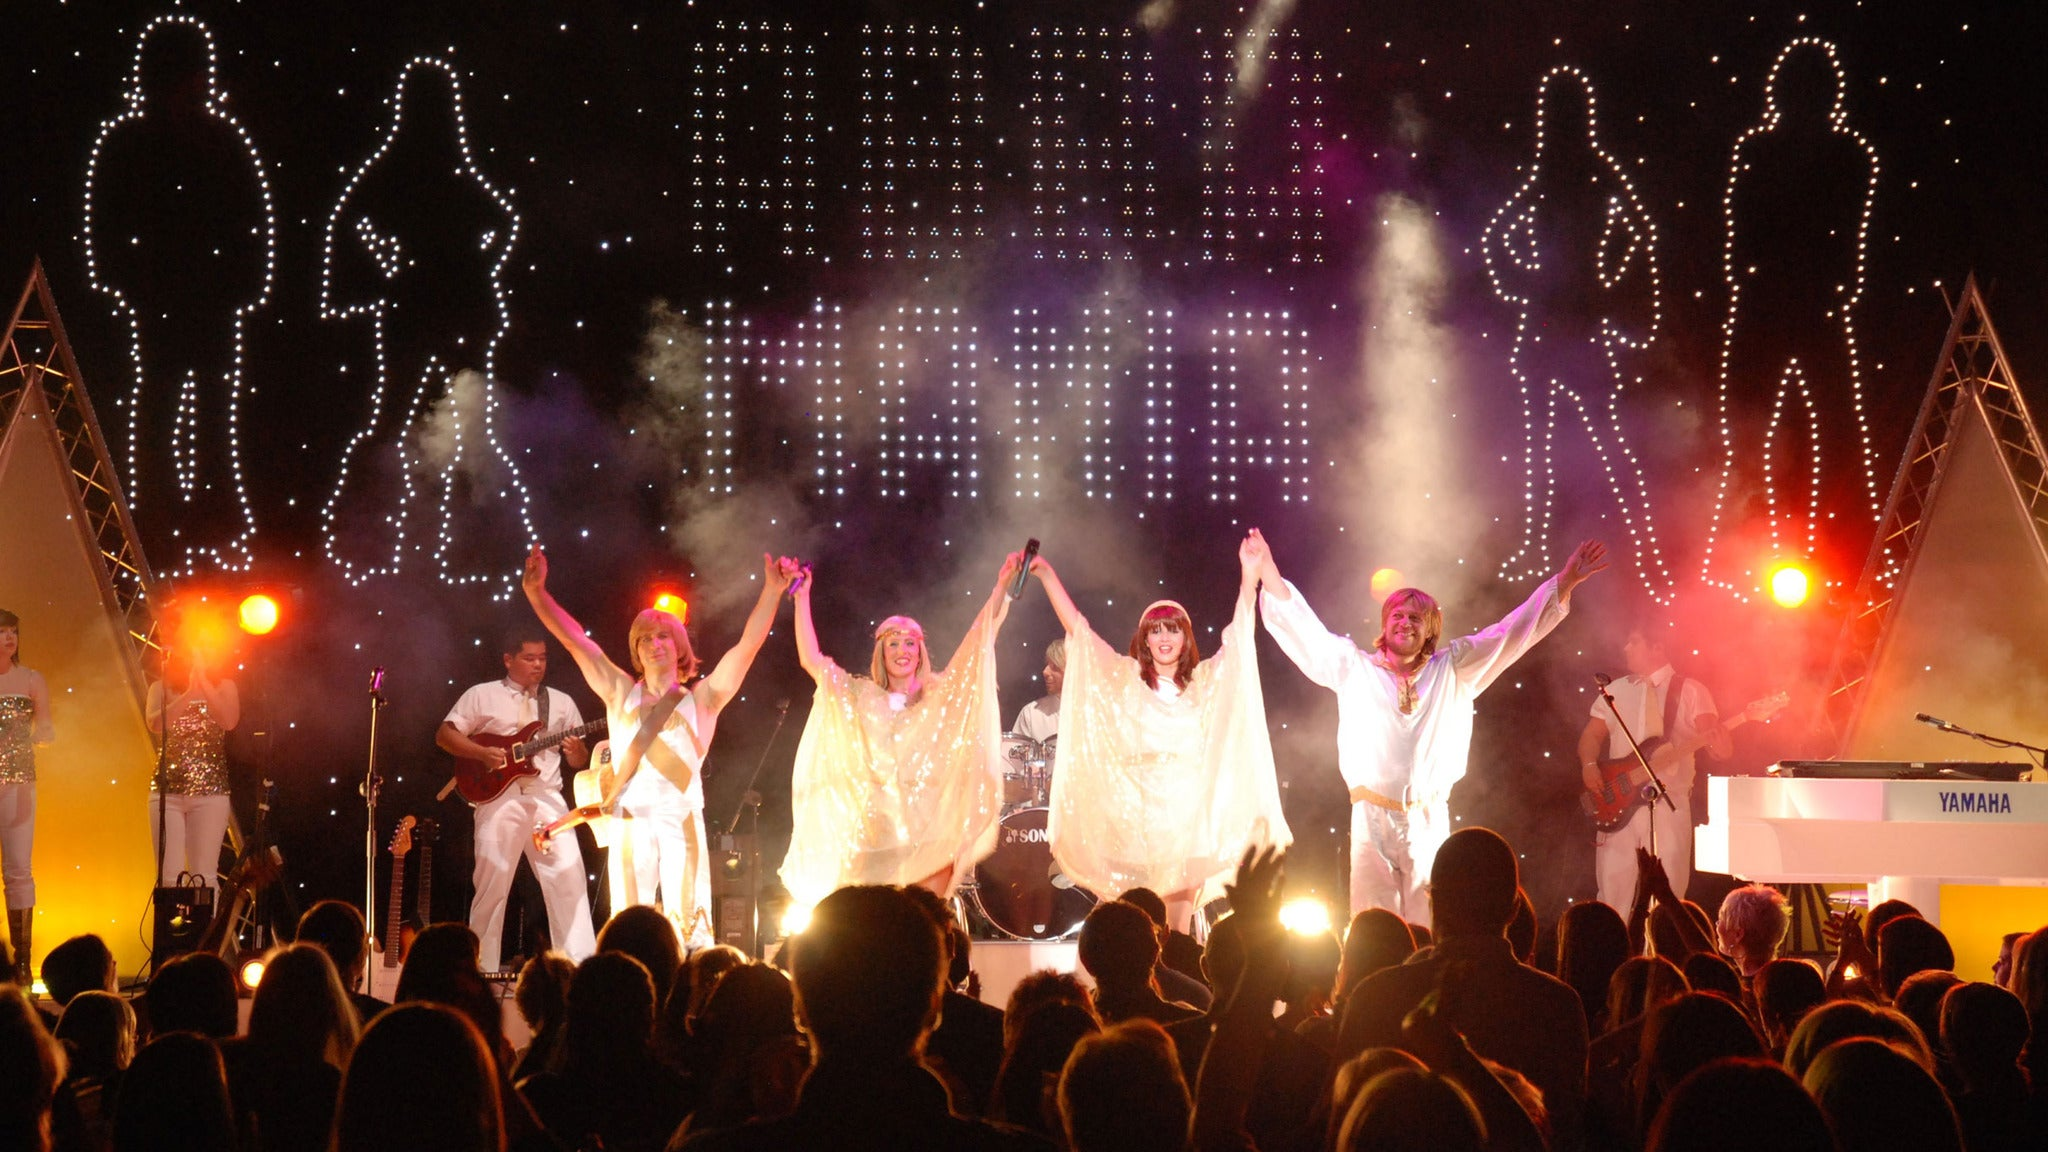 Abba Mania at Scottish Rite Auditorium